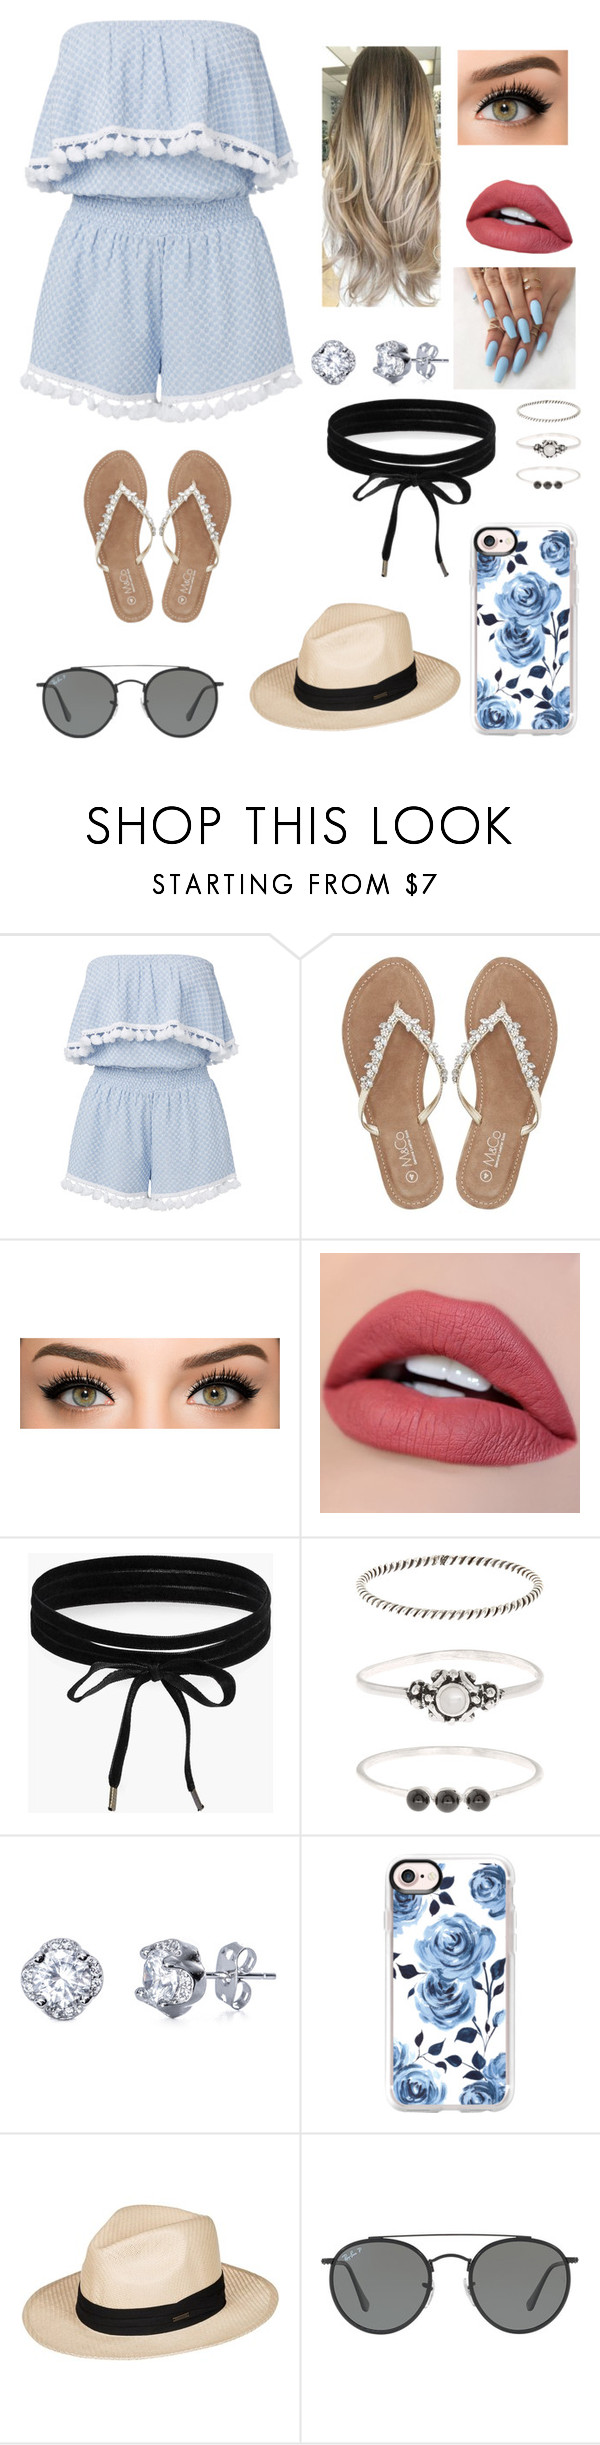 """""""Summer!"""" by lovepink5247 ❤ liked on Polyvore featuring M&Co, Boohoo, Accessorize, Casetify, Roxy and Ray-Ban"""